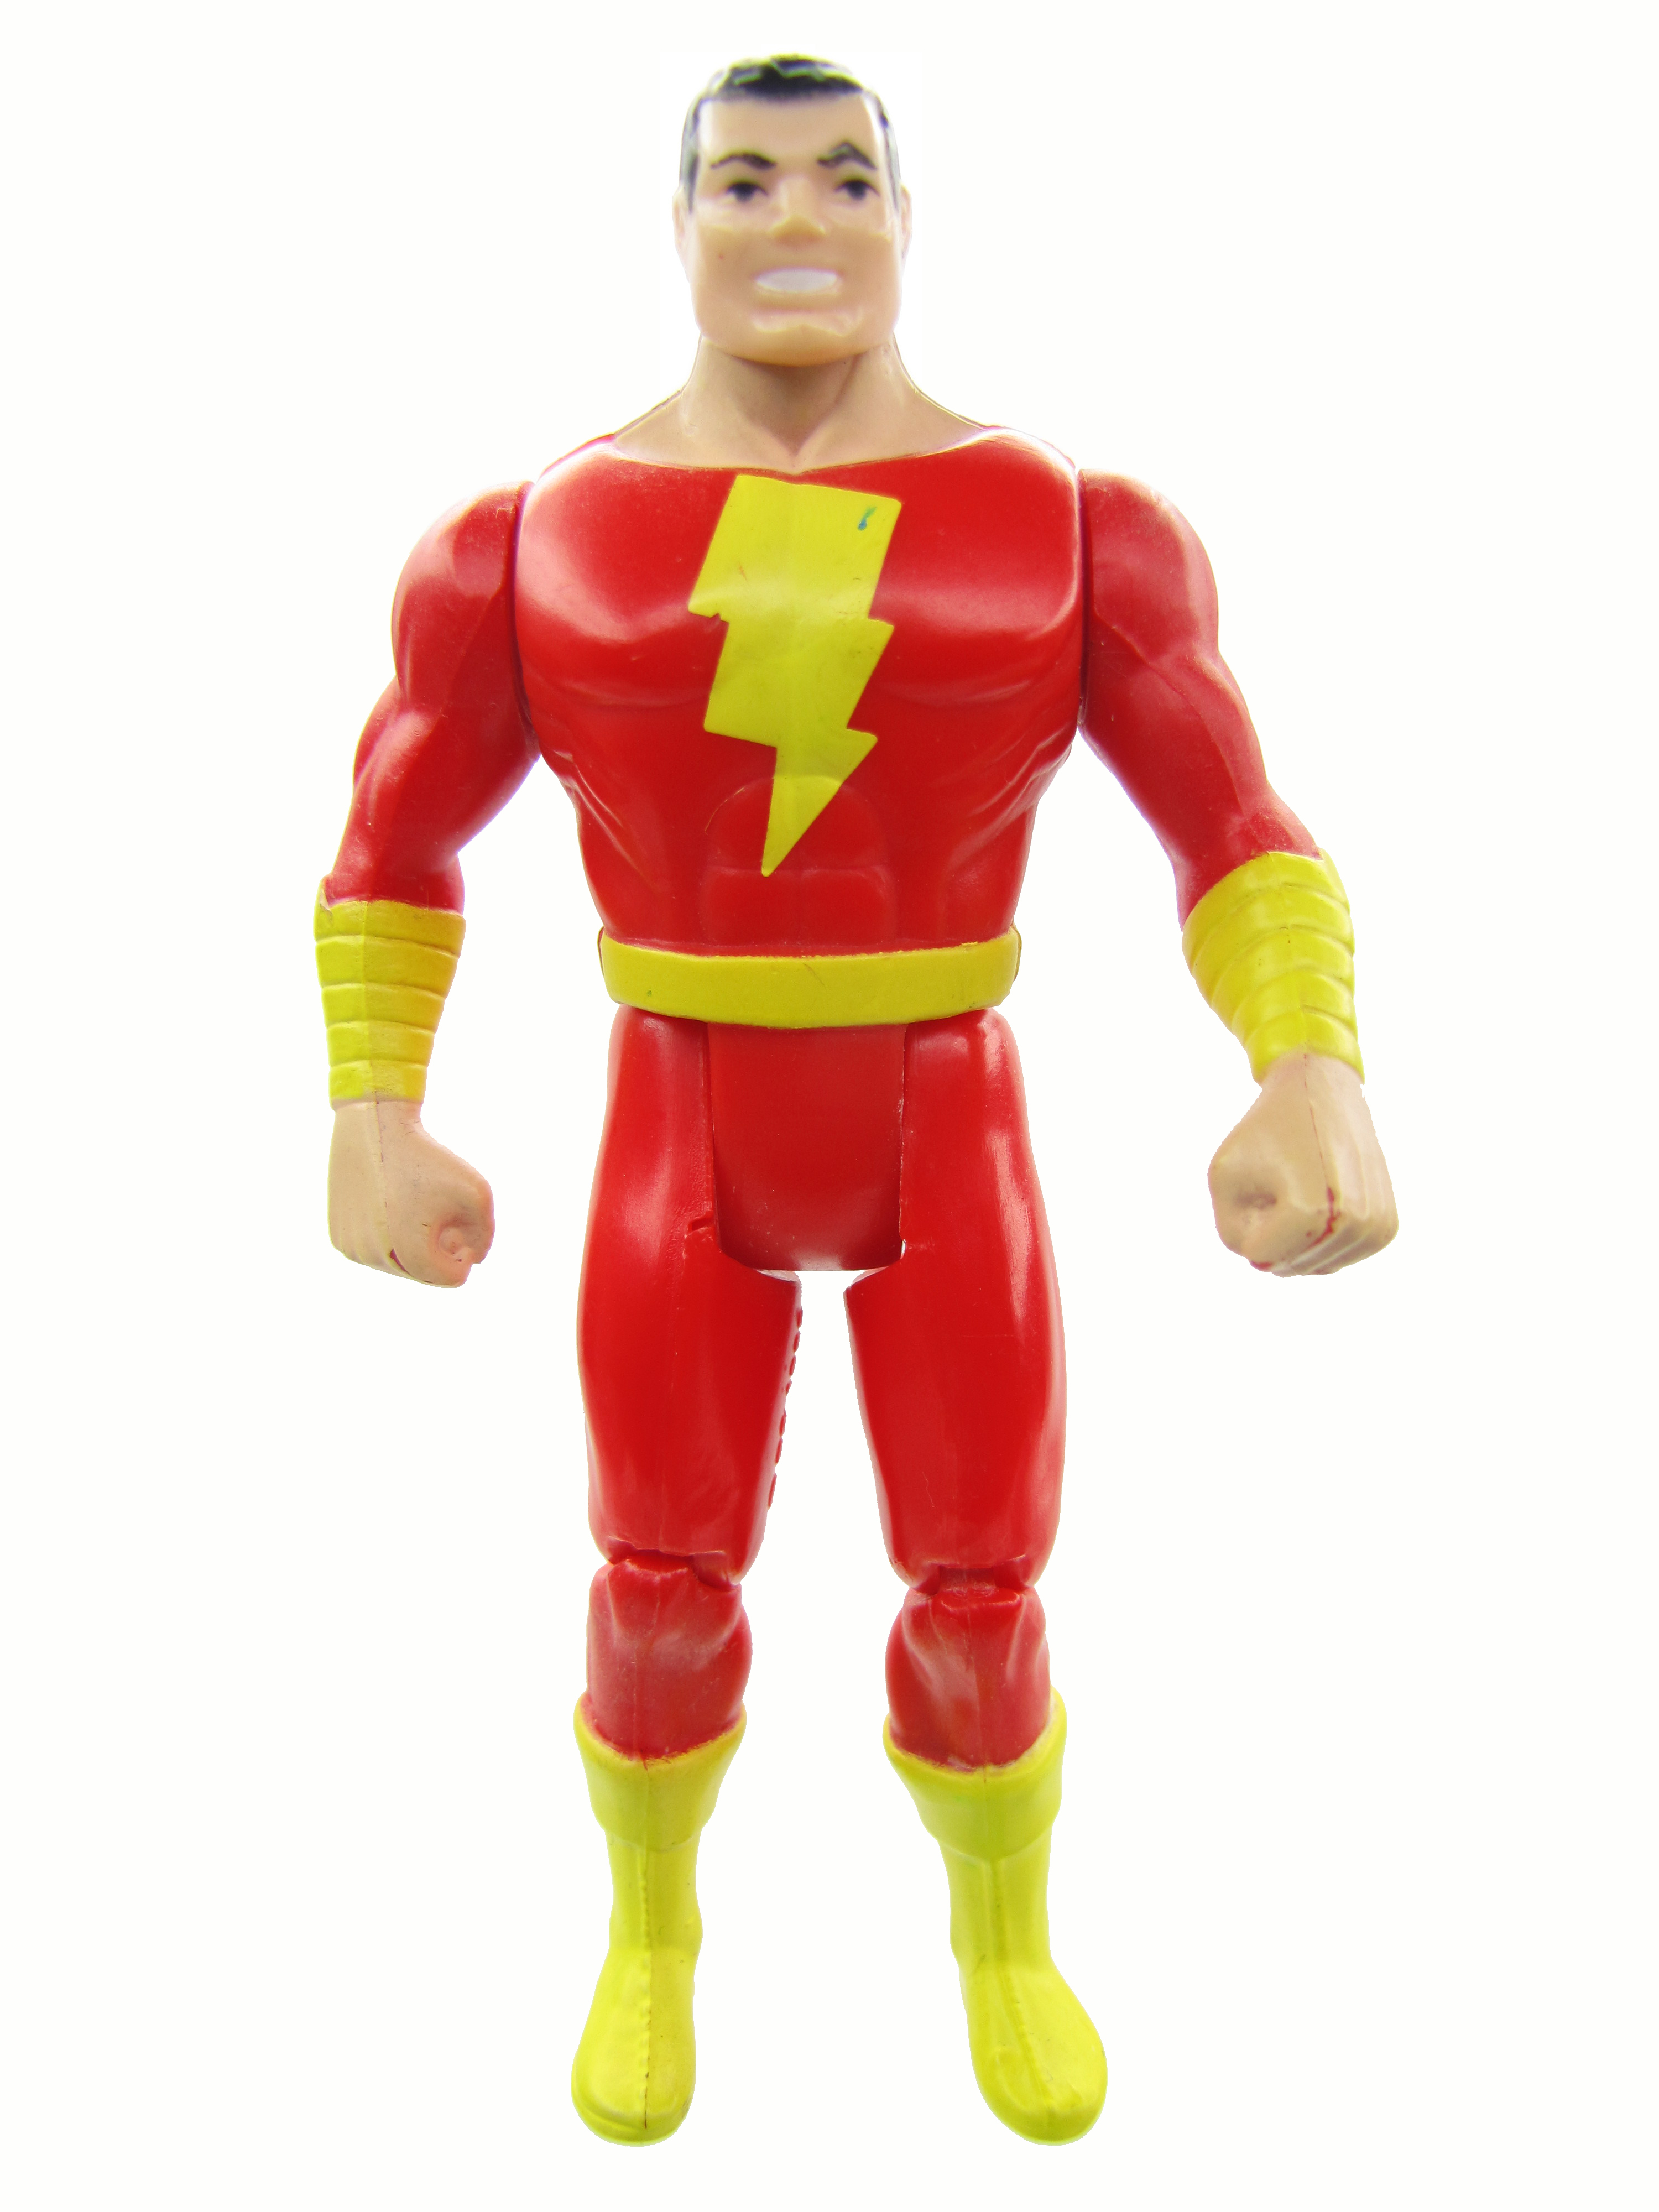 1986 DC Super Powers Collection SHAZAM Near Mint Condition